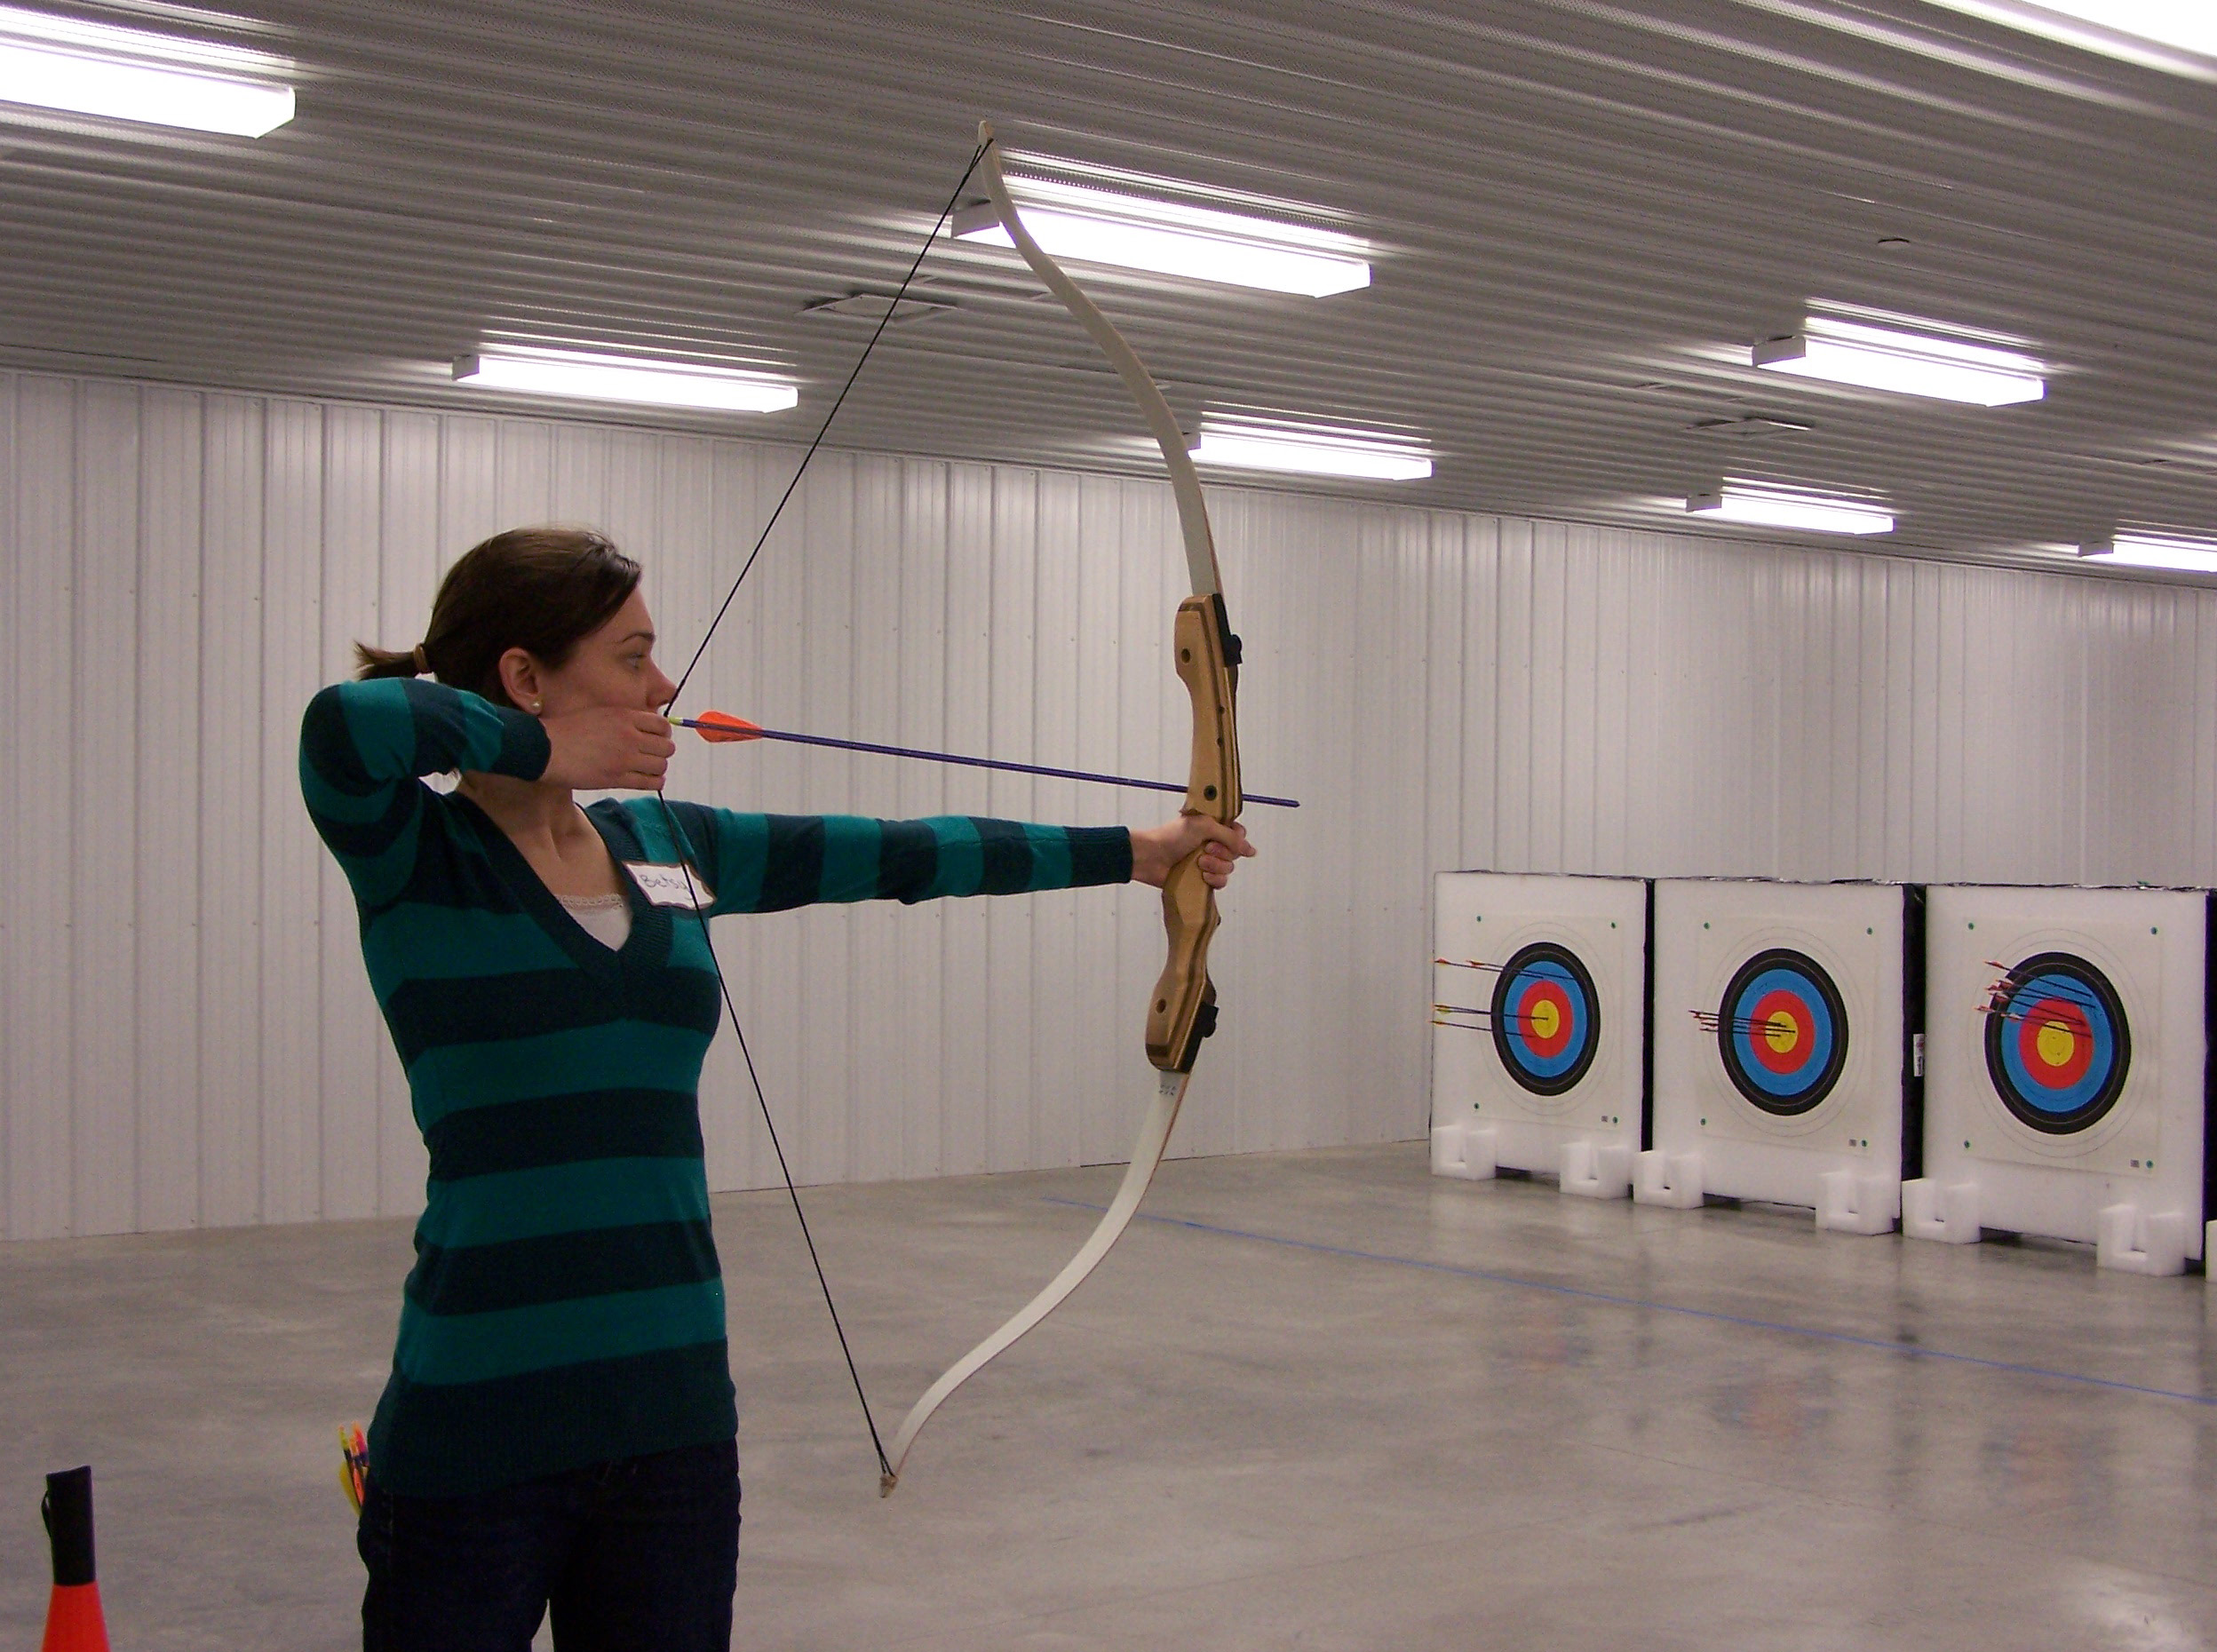 shoot recurve bow